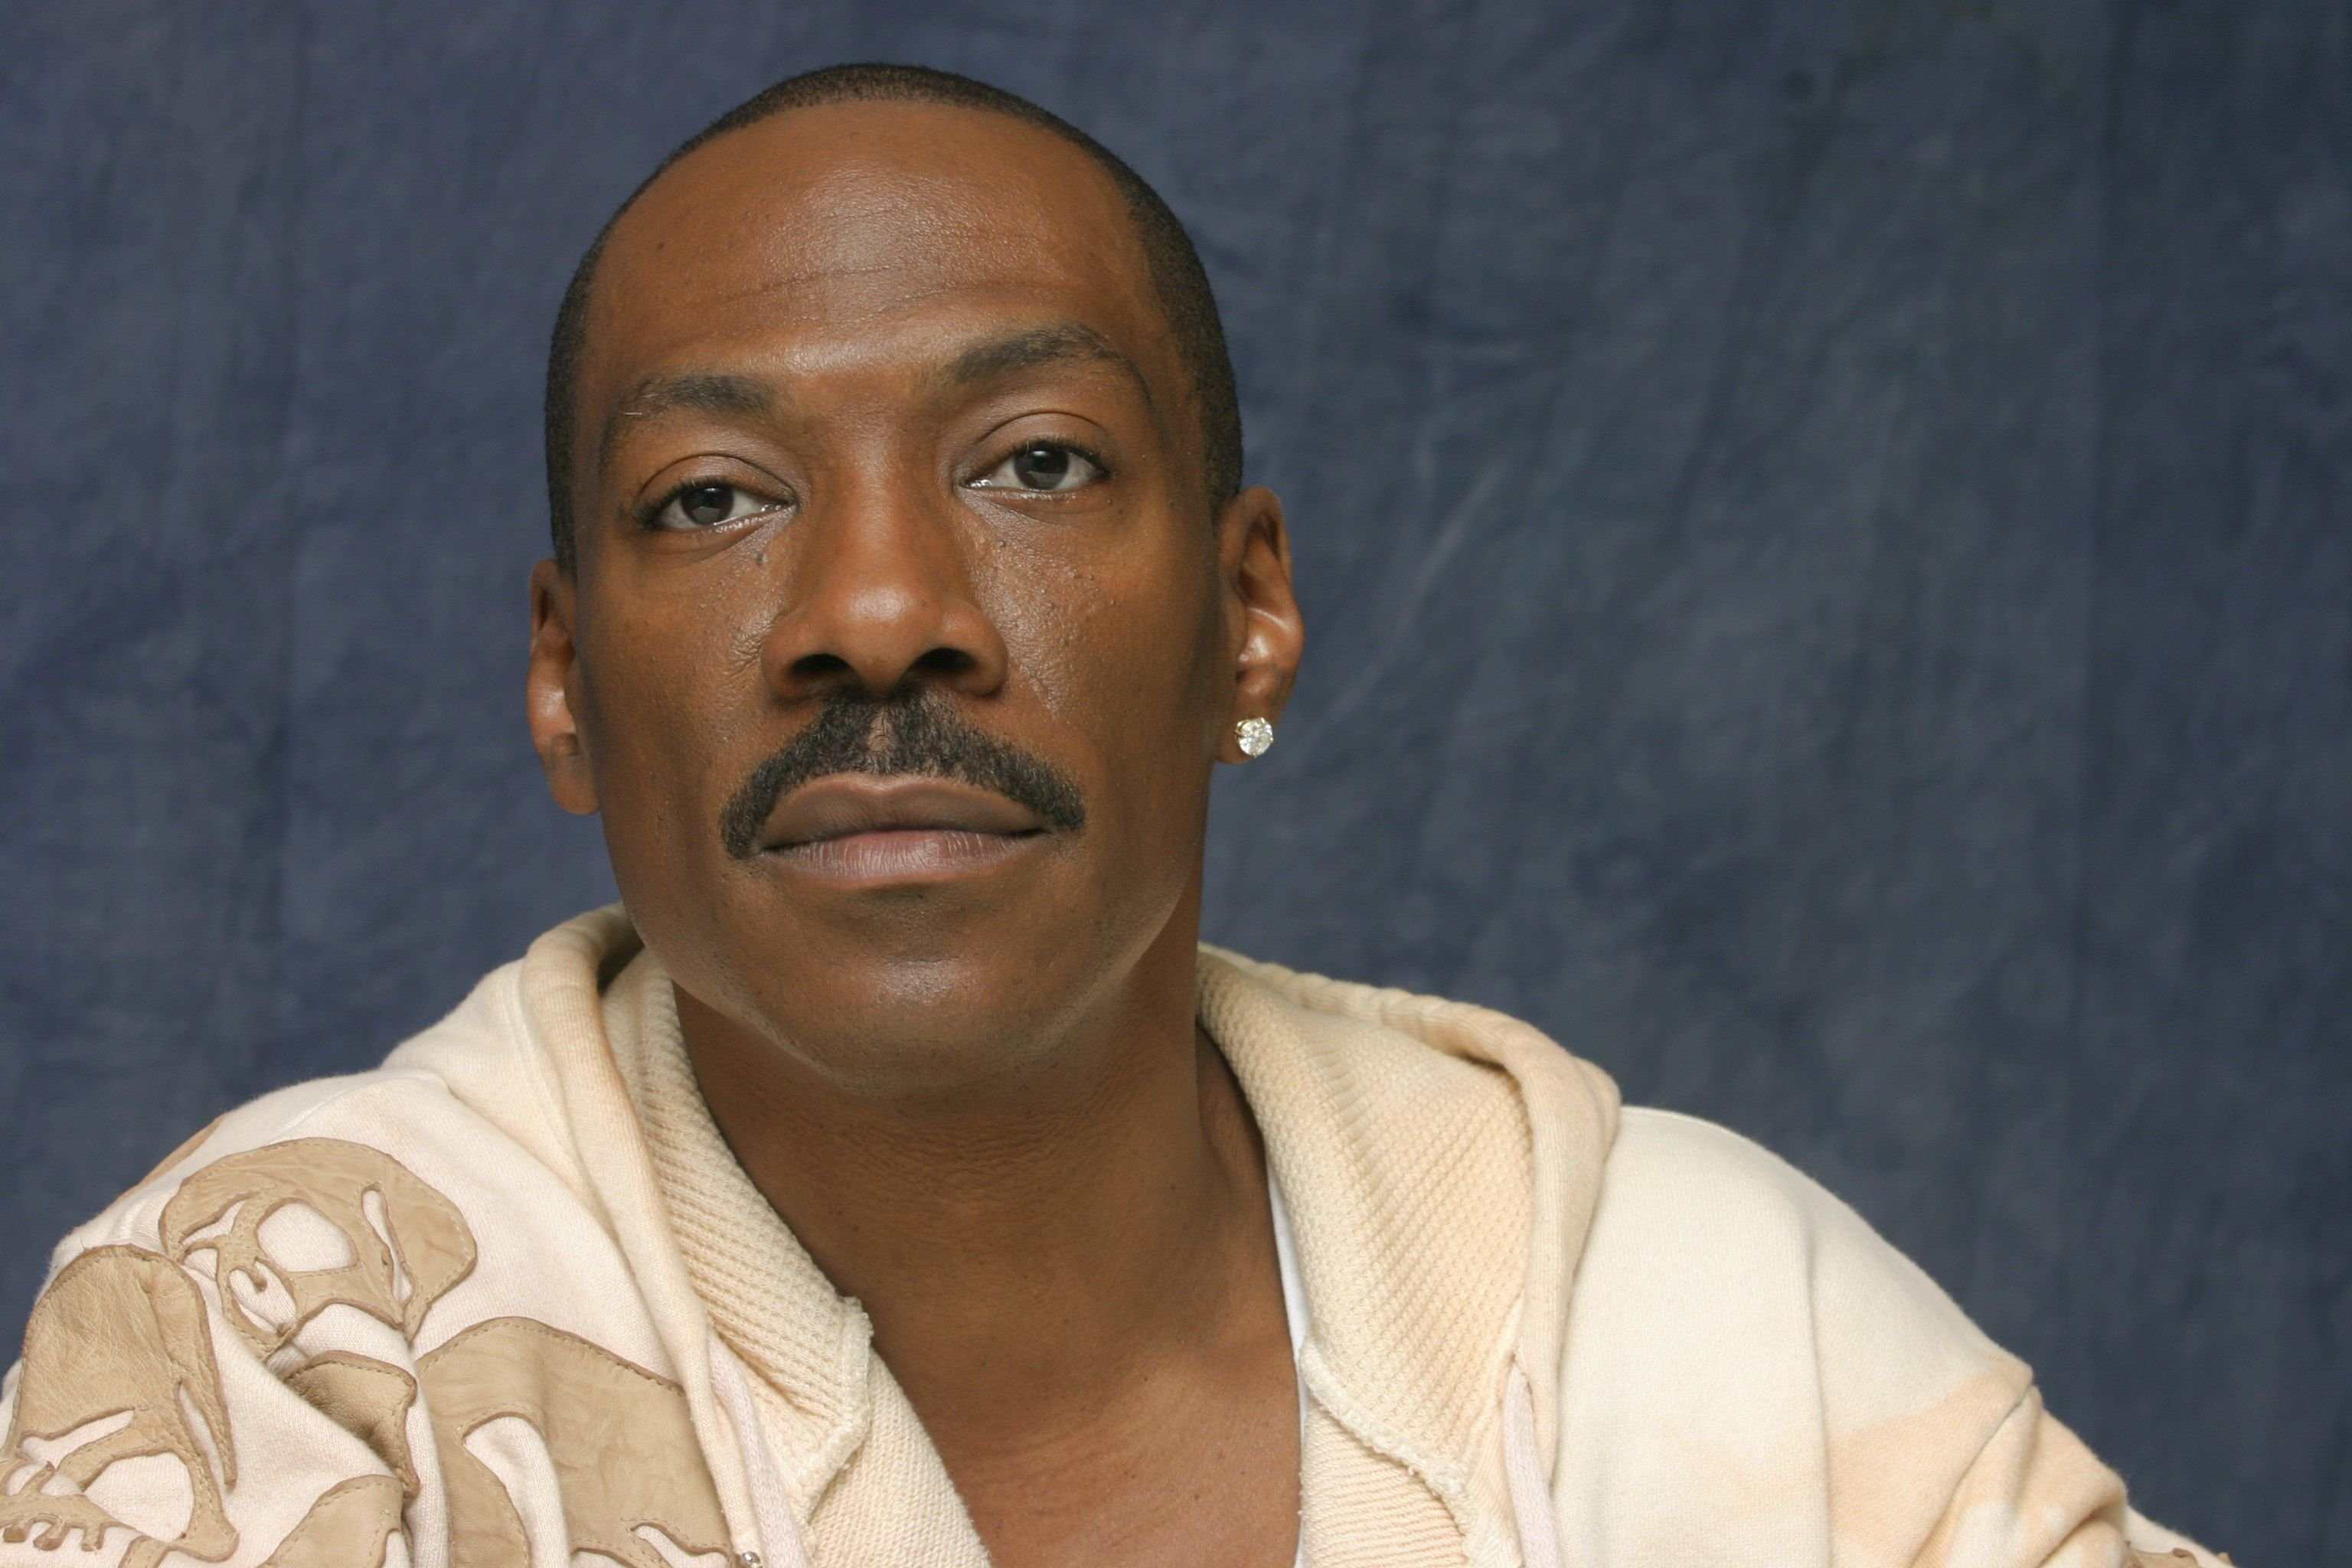 """Actor Eddie Murphy's portrait session for his film """"Shrek the Third"""" in Los Angeles, California in 2007.   Source: Getty Images"""